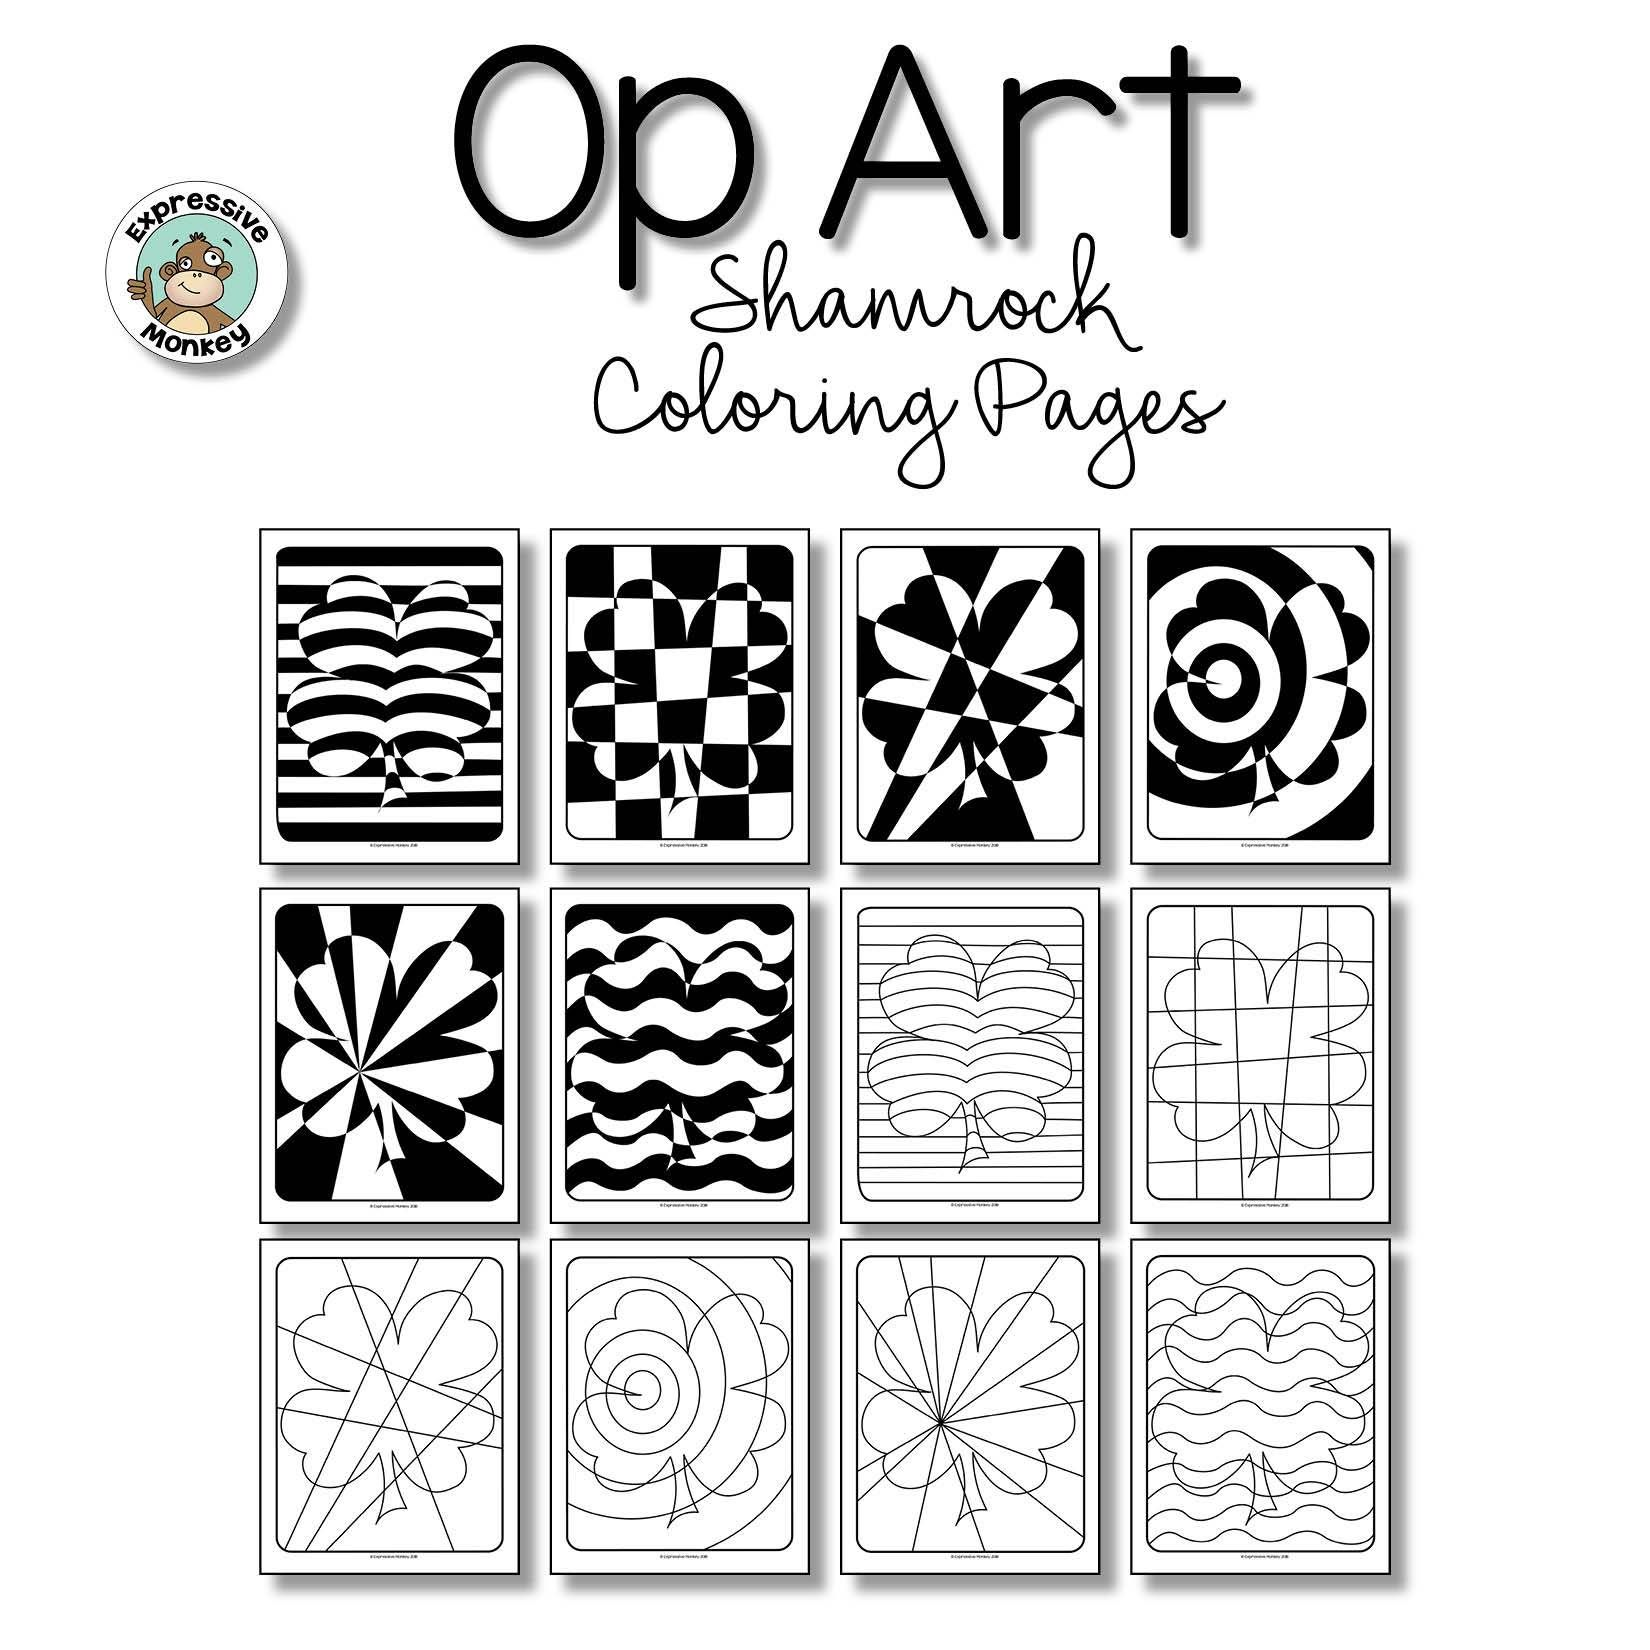 Op Art Shamrock Coloring Pages